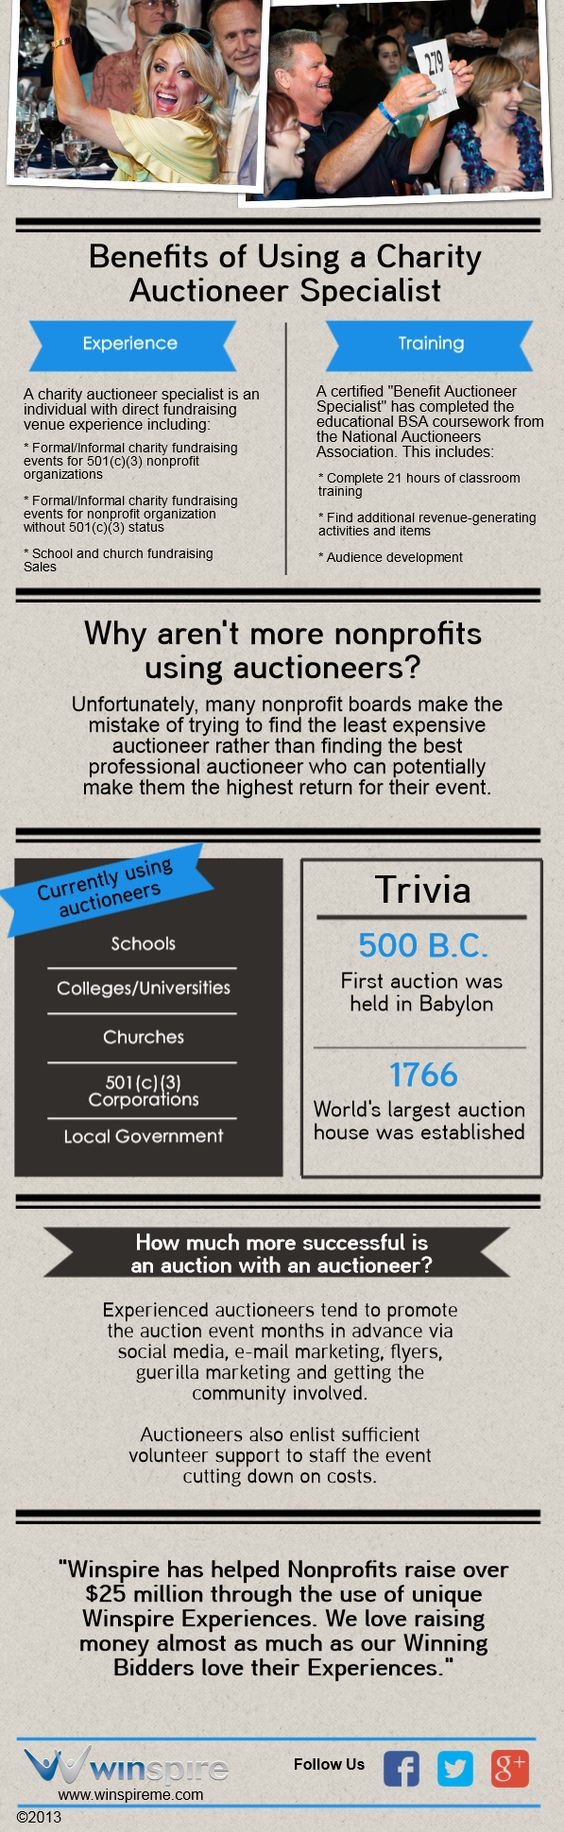 benefits using auctioneer infographic